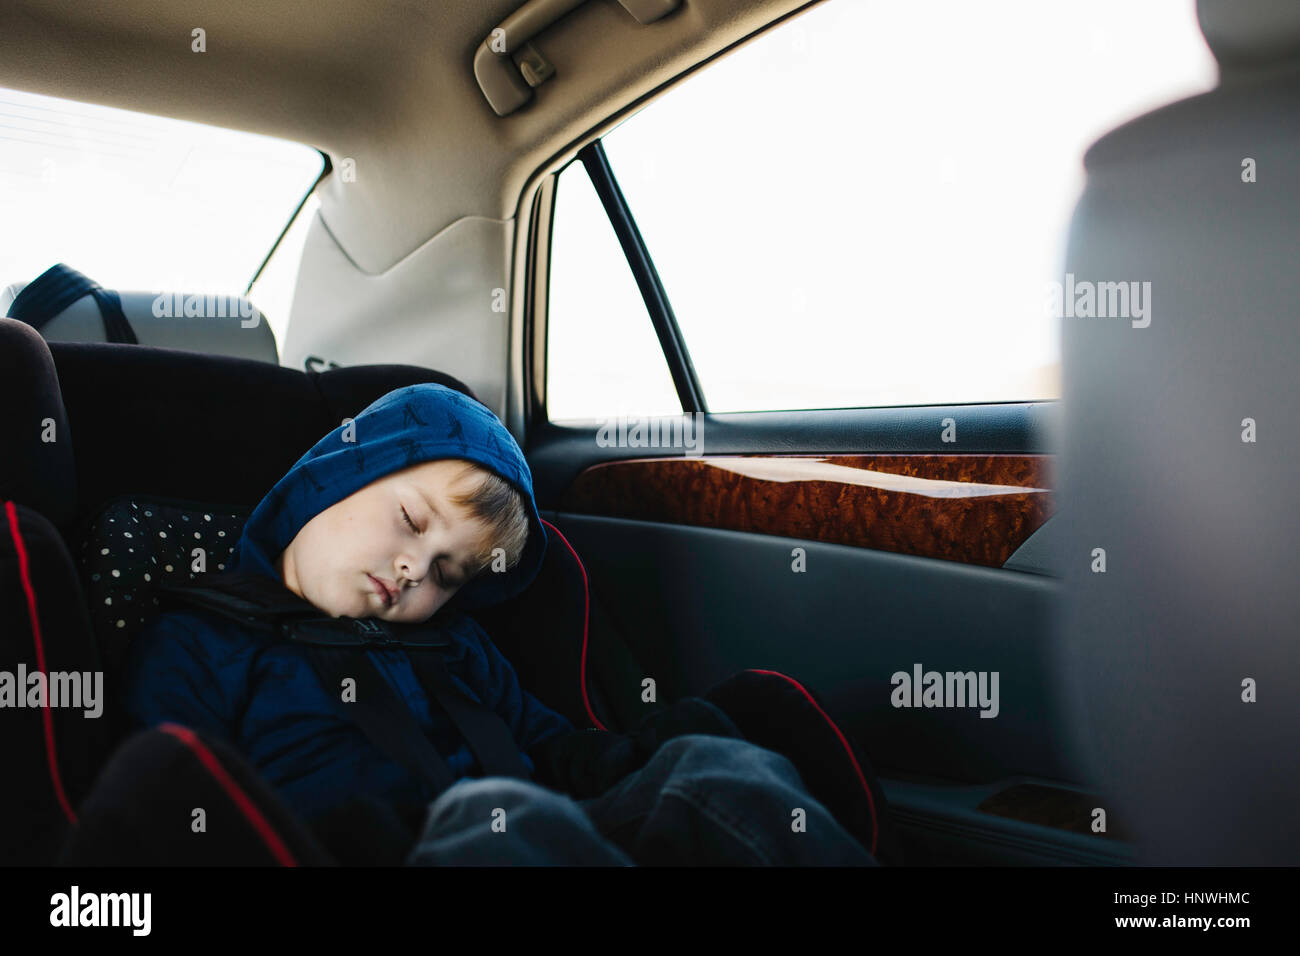 Young boy sleeping in back seat of car - Stock Image